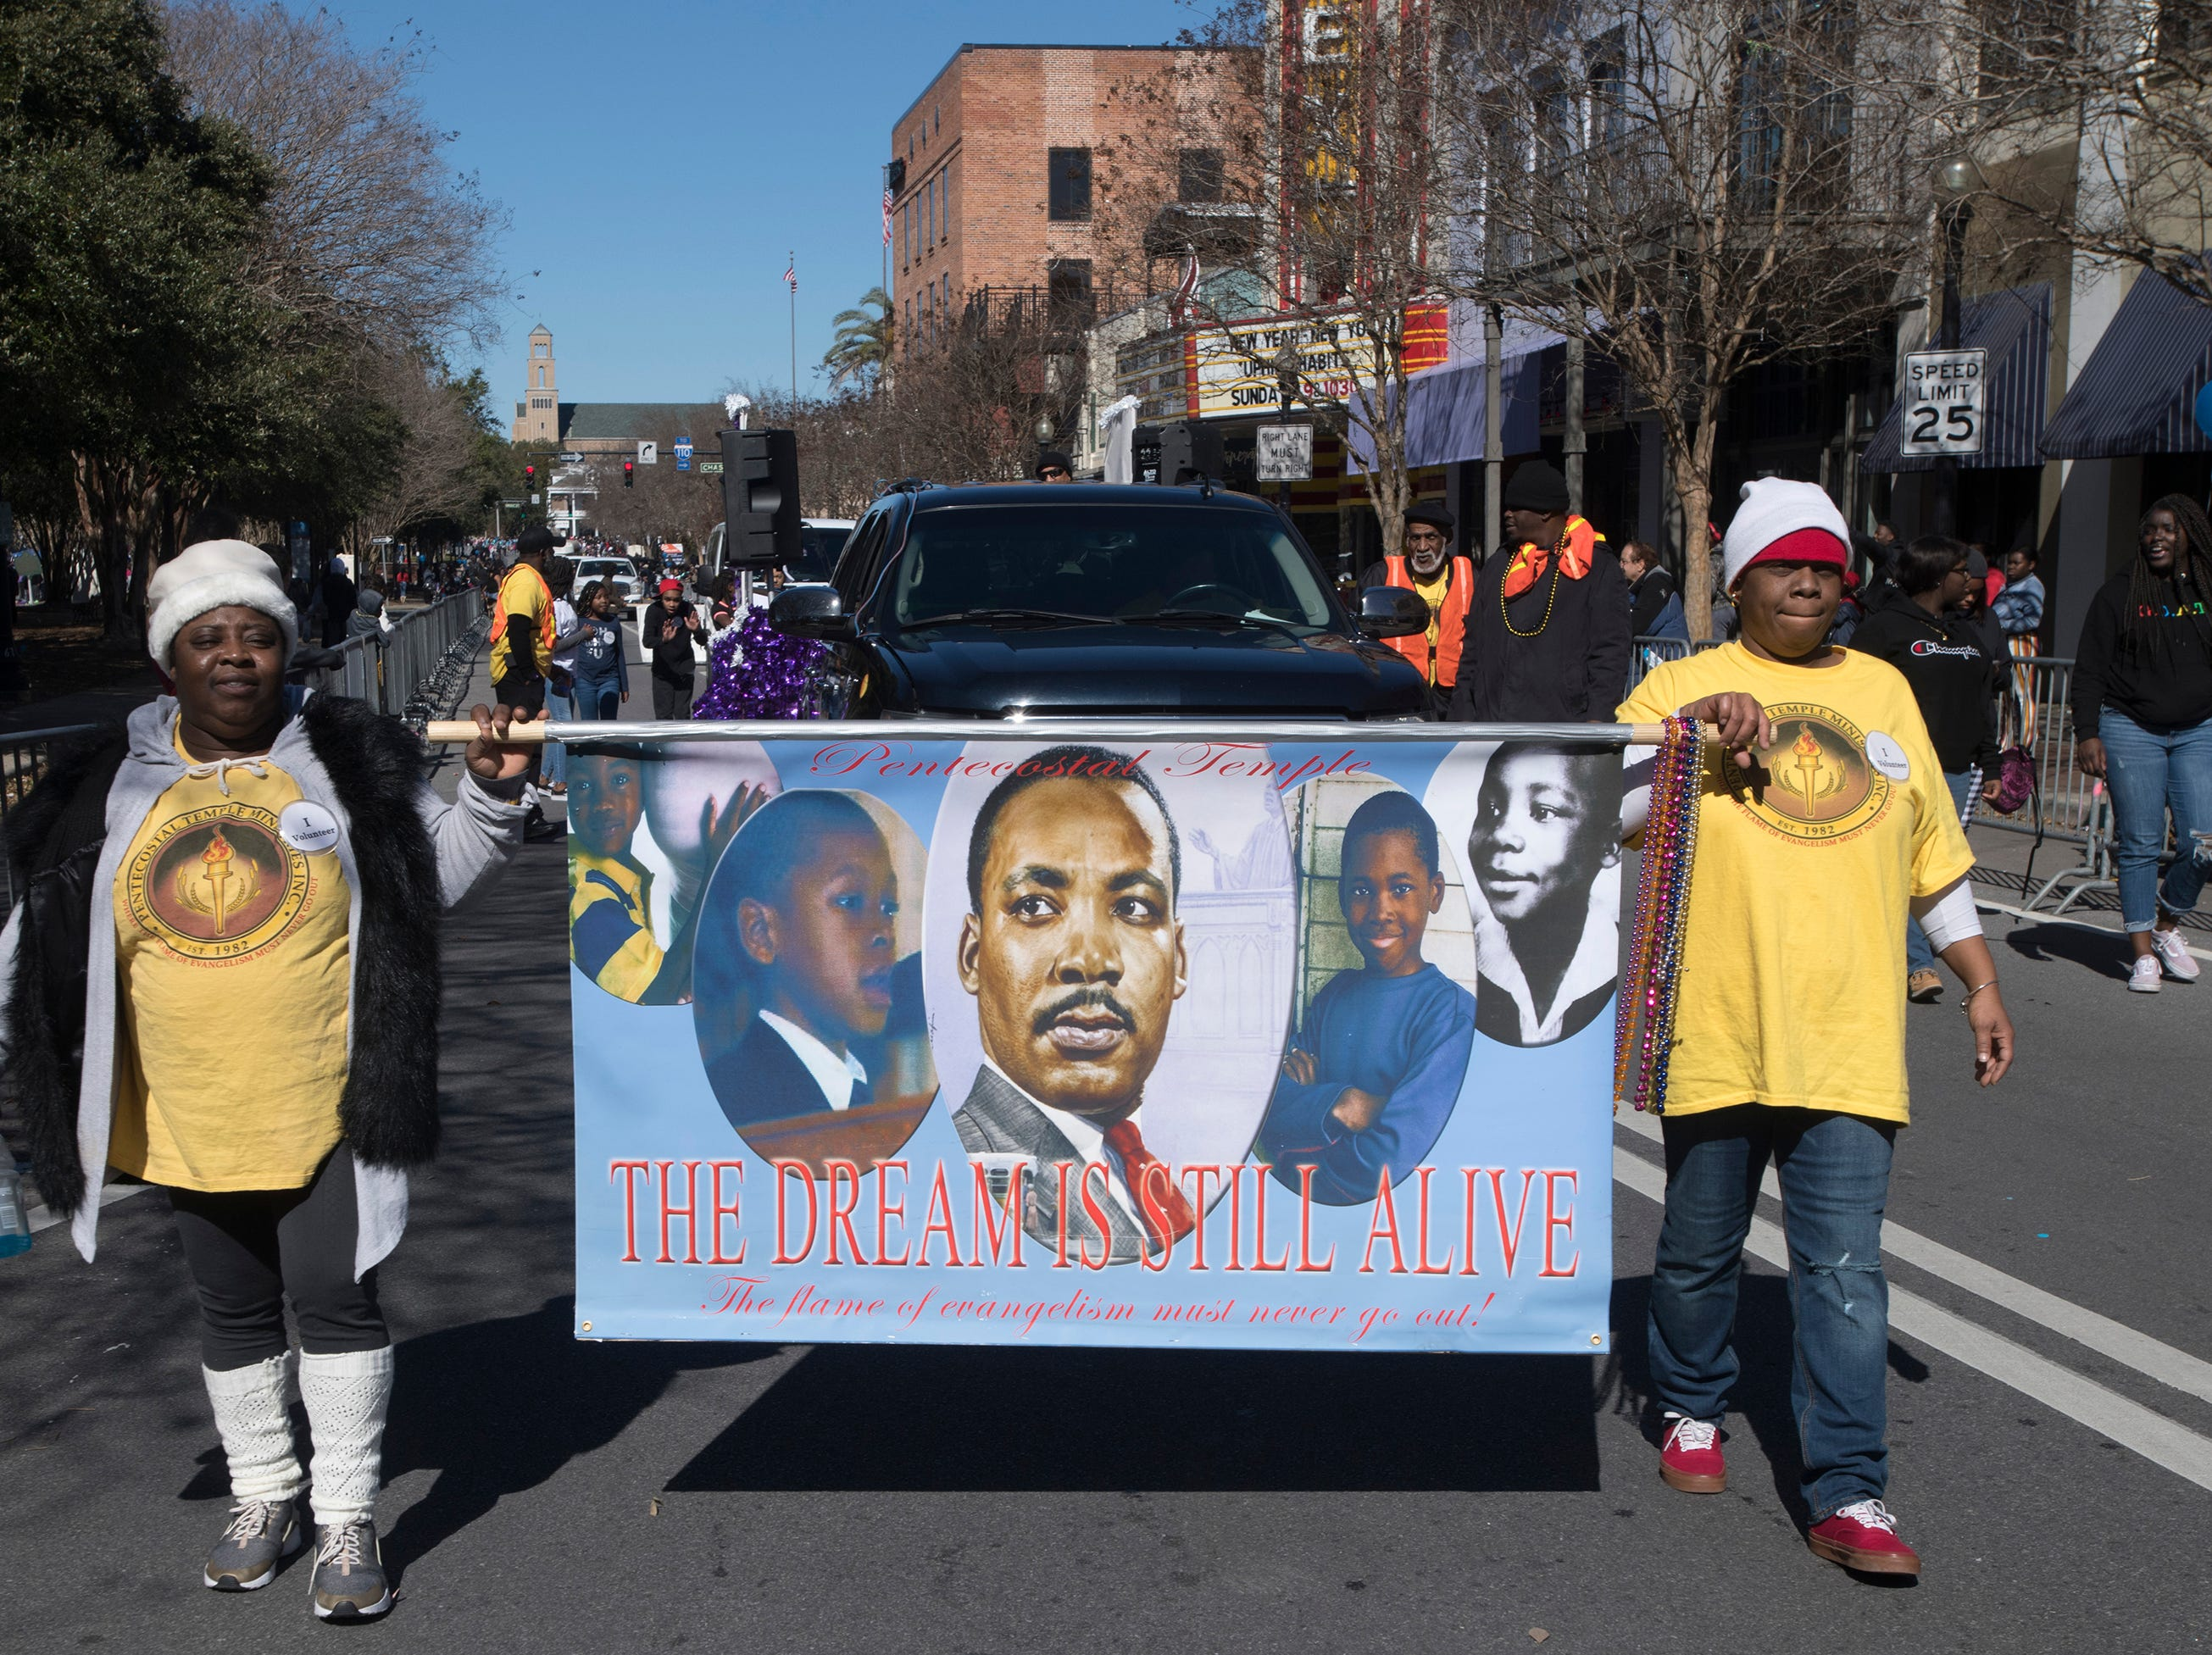 Pentecostal Temple volunteers Jadorhia Hand and Lakeresha Jackson march in the annual Martin Luther King, Jr. parade in downtown Pensacola on Monday, Jan. 21, 2019.